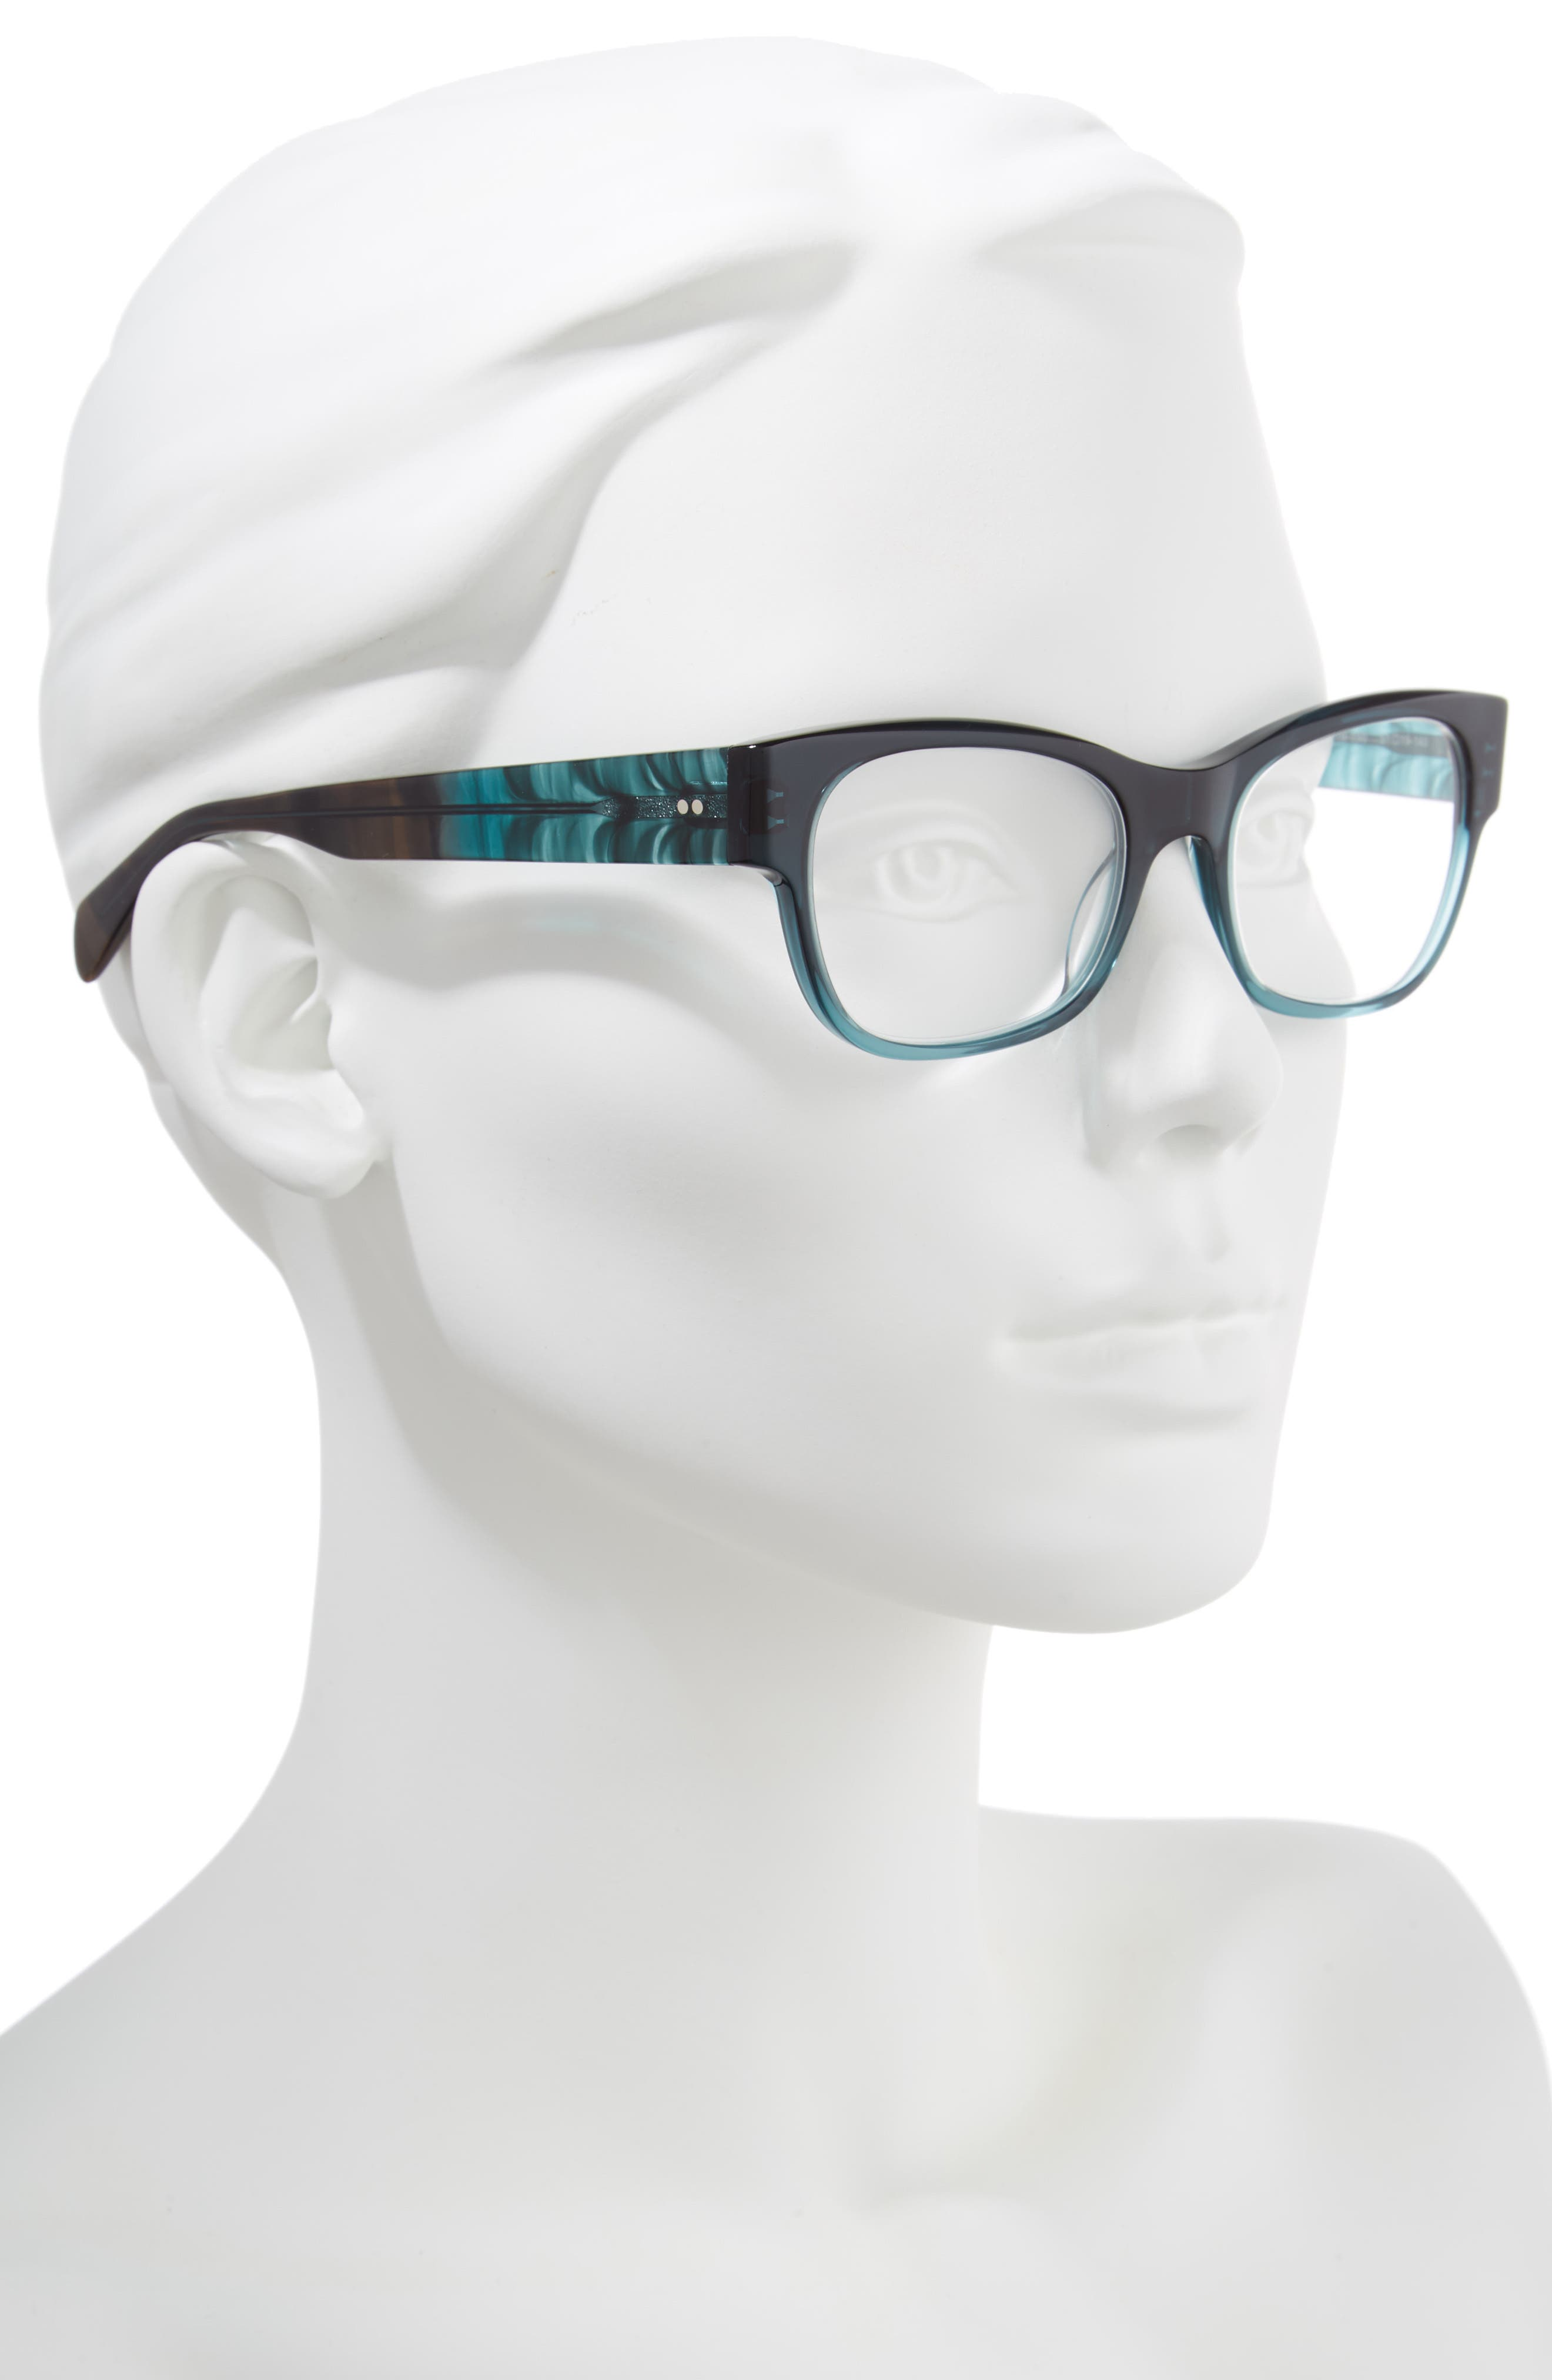 Marty 51mm Reading Glasses,                             Alternate thumbnail 2, color,                             Teal